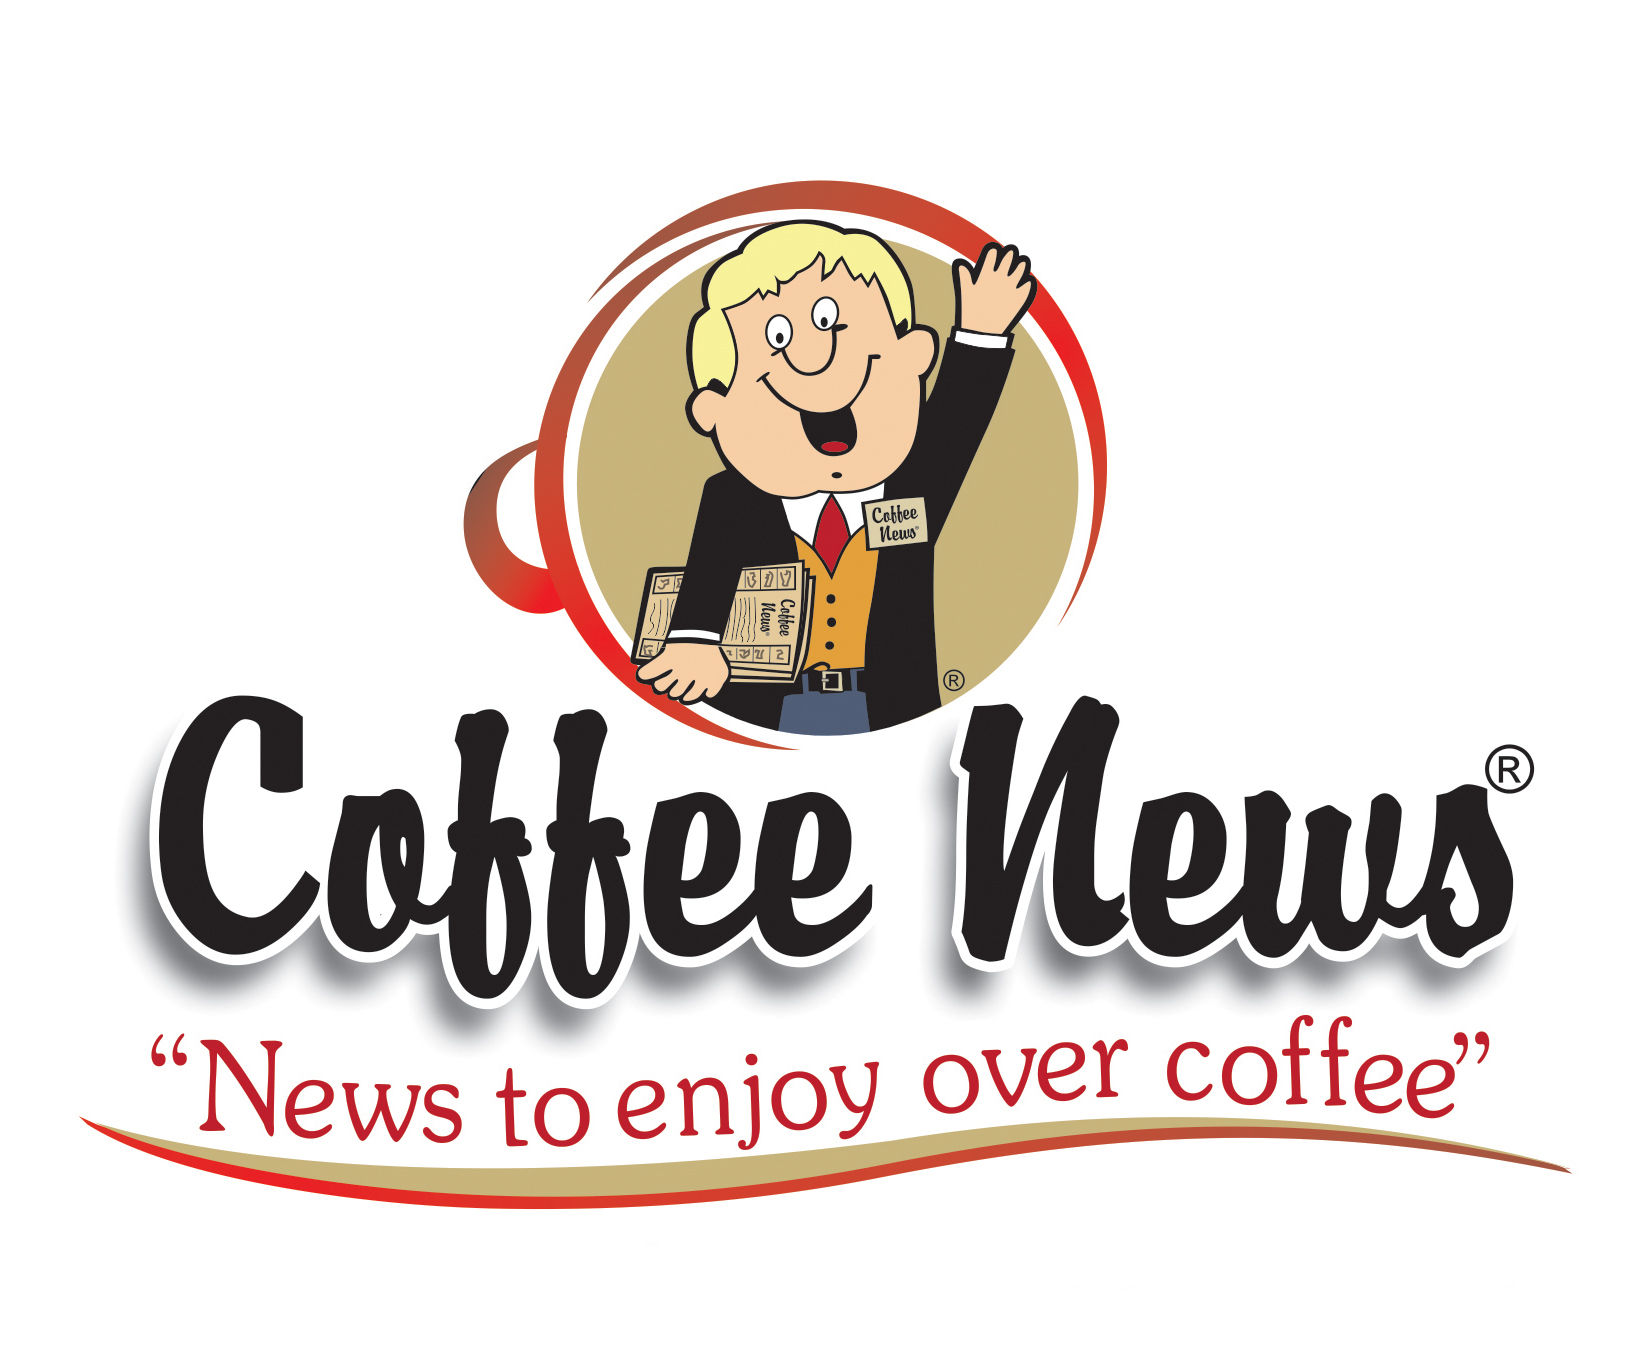 Coffee News without Suncoast